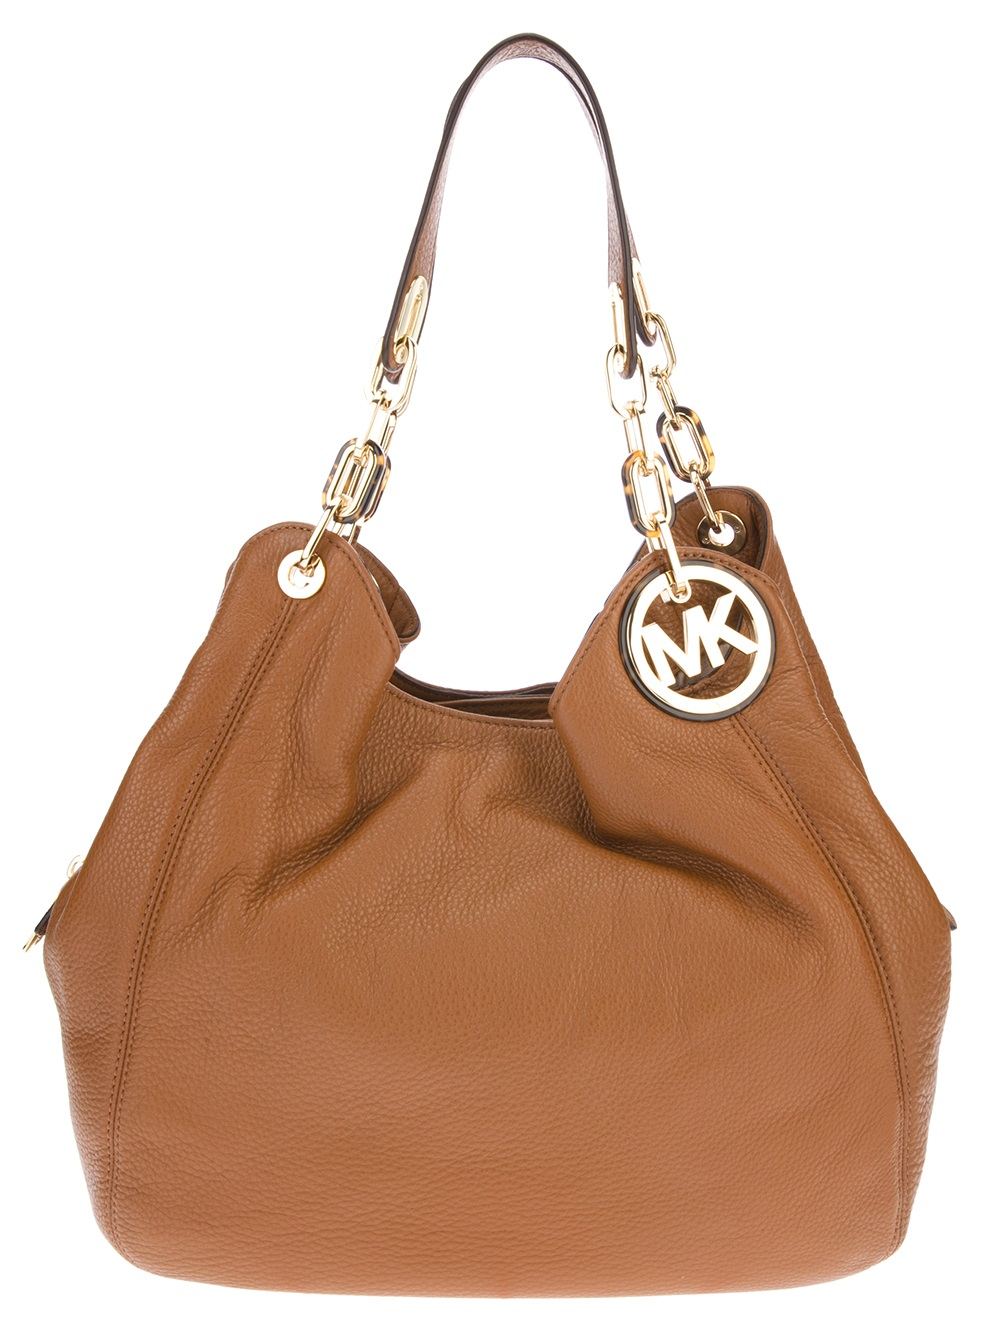 Michael Kors Slouch Tote Bag Brown besides Ysl Saint Laurent Classic Medium Monogram College Bag In Grey Ultramarine Matelasse Leather furthermore Saint Laurent Monogramme Caviar Leather Wallet Black furthermore Fashion Inspiration For The Day Red Handbags For The Holidays further Carven Round Bag Orangeplain. on valentino purse